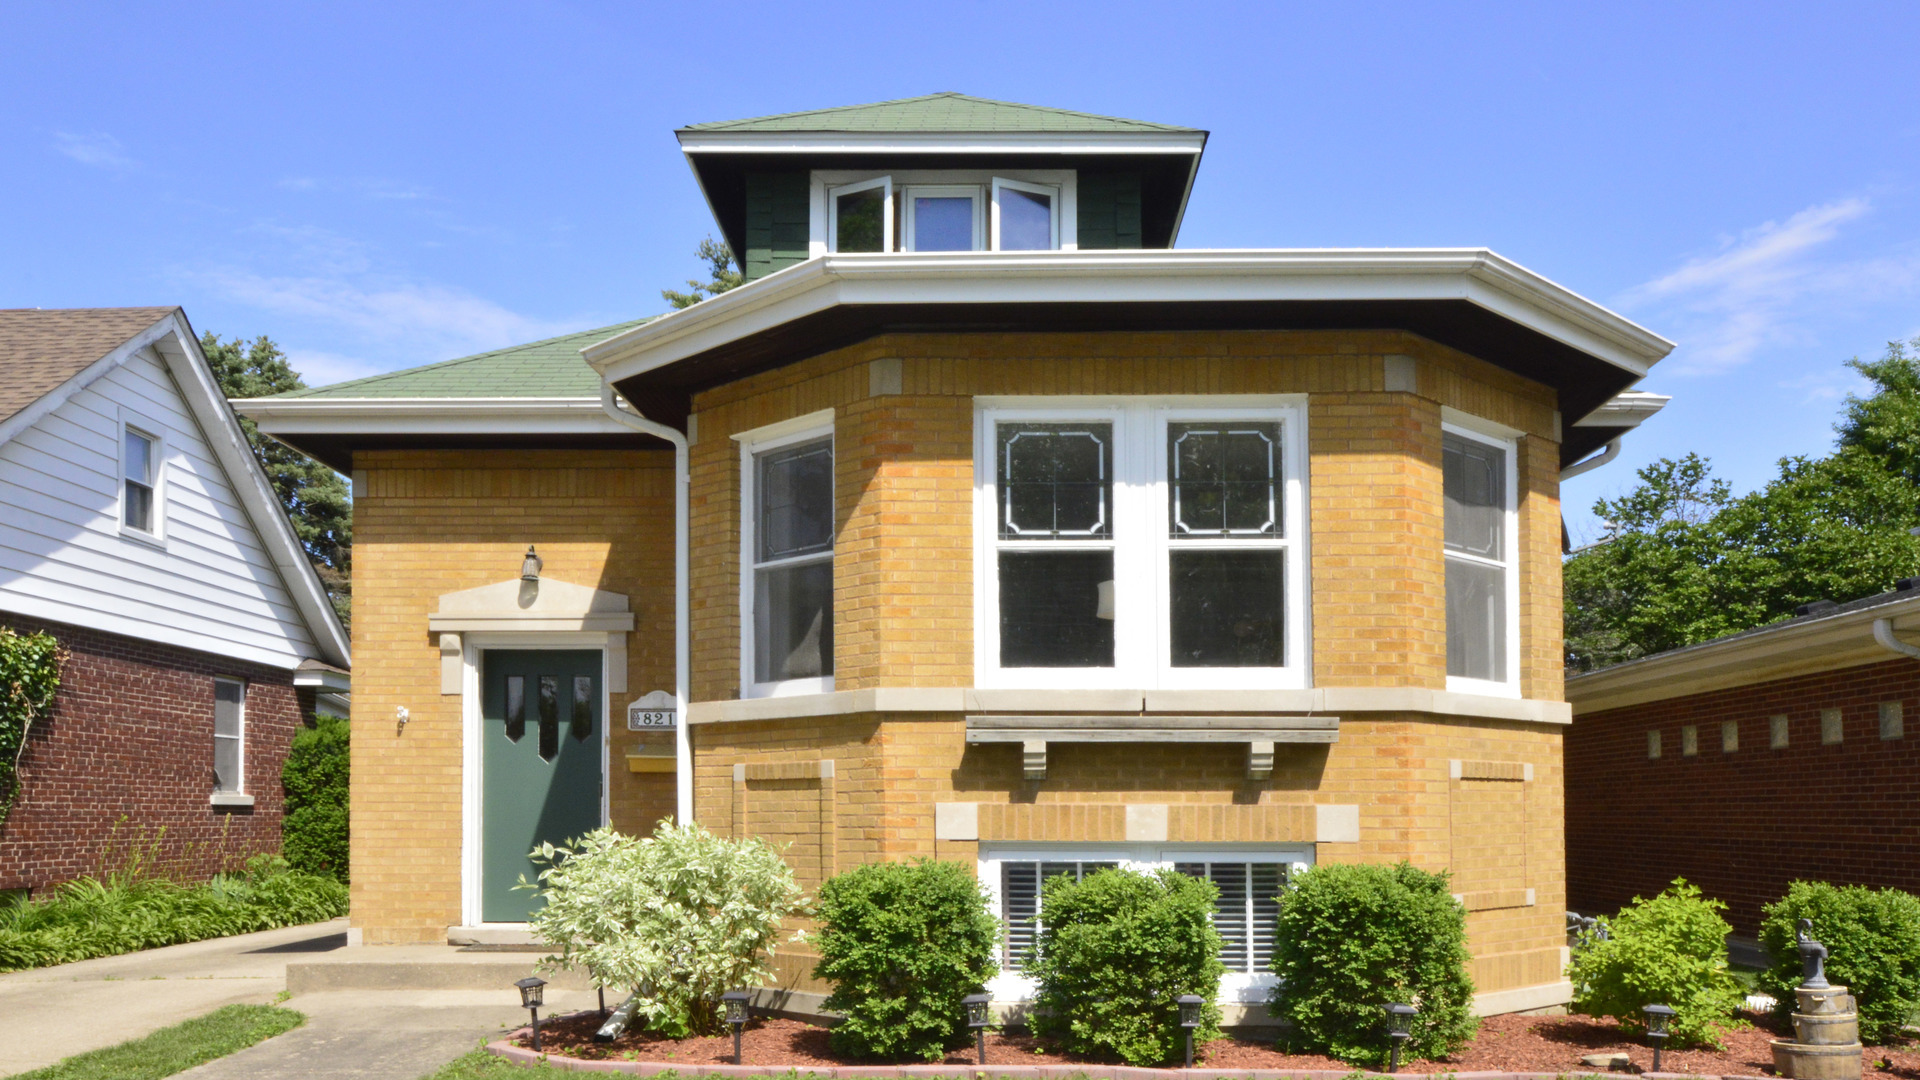 One of Des Plaines 5 Bedroom Homes for Sale at 821 South 2nd Avenue